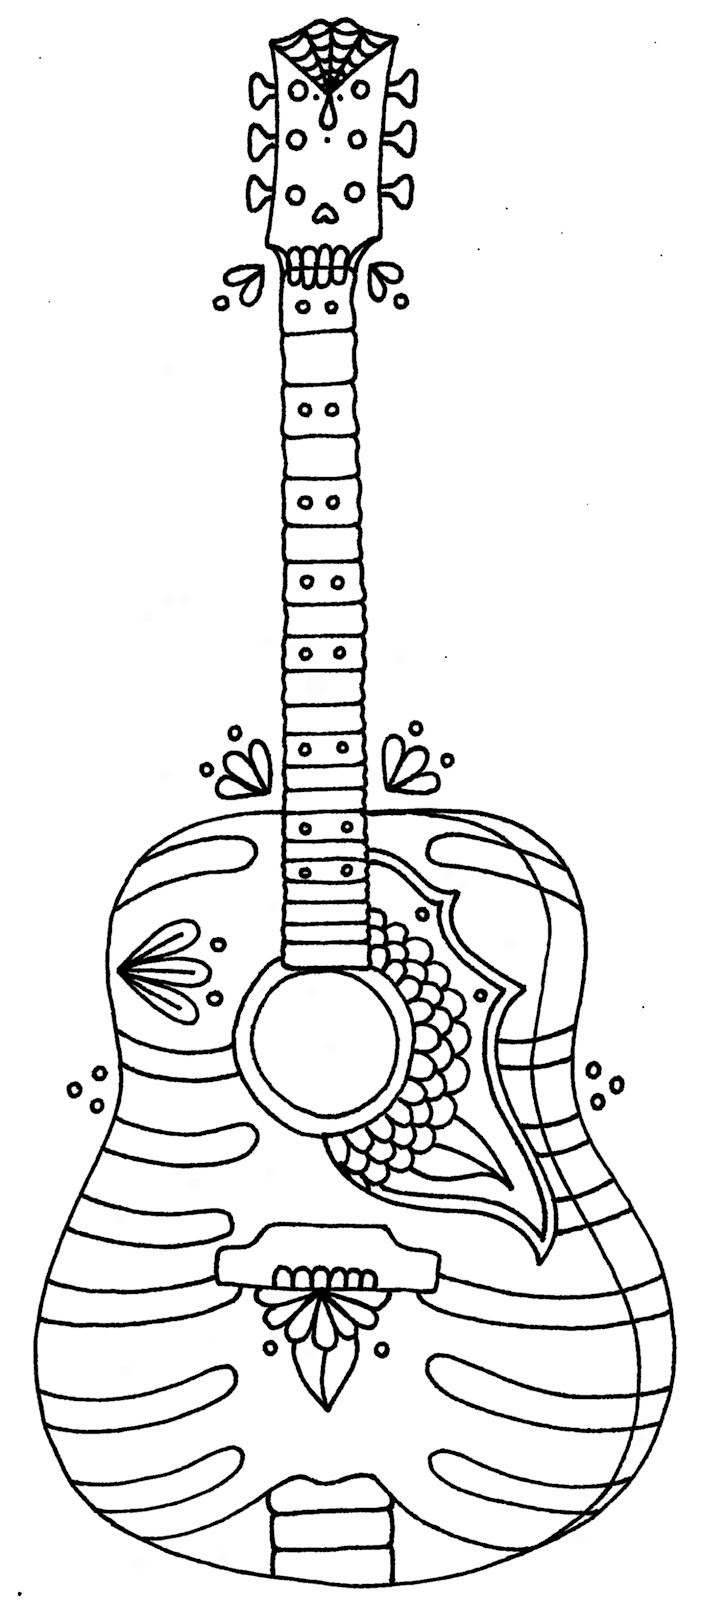 coloring printable guitar 25 colorful guitar coloring pages for your little ones printable guitar coloring